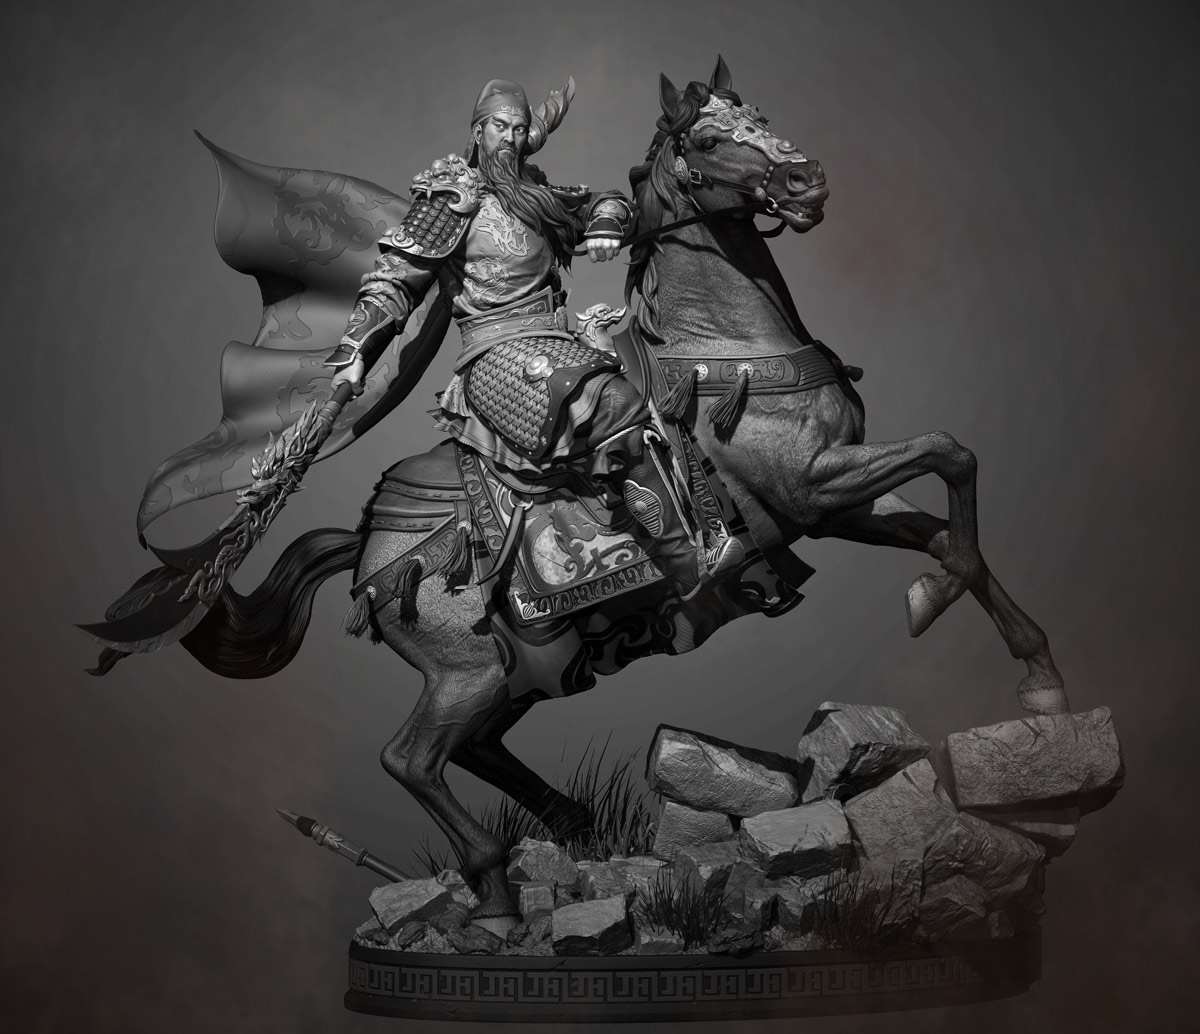 3d model character fighter man horse